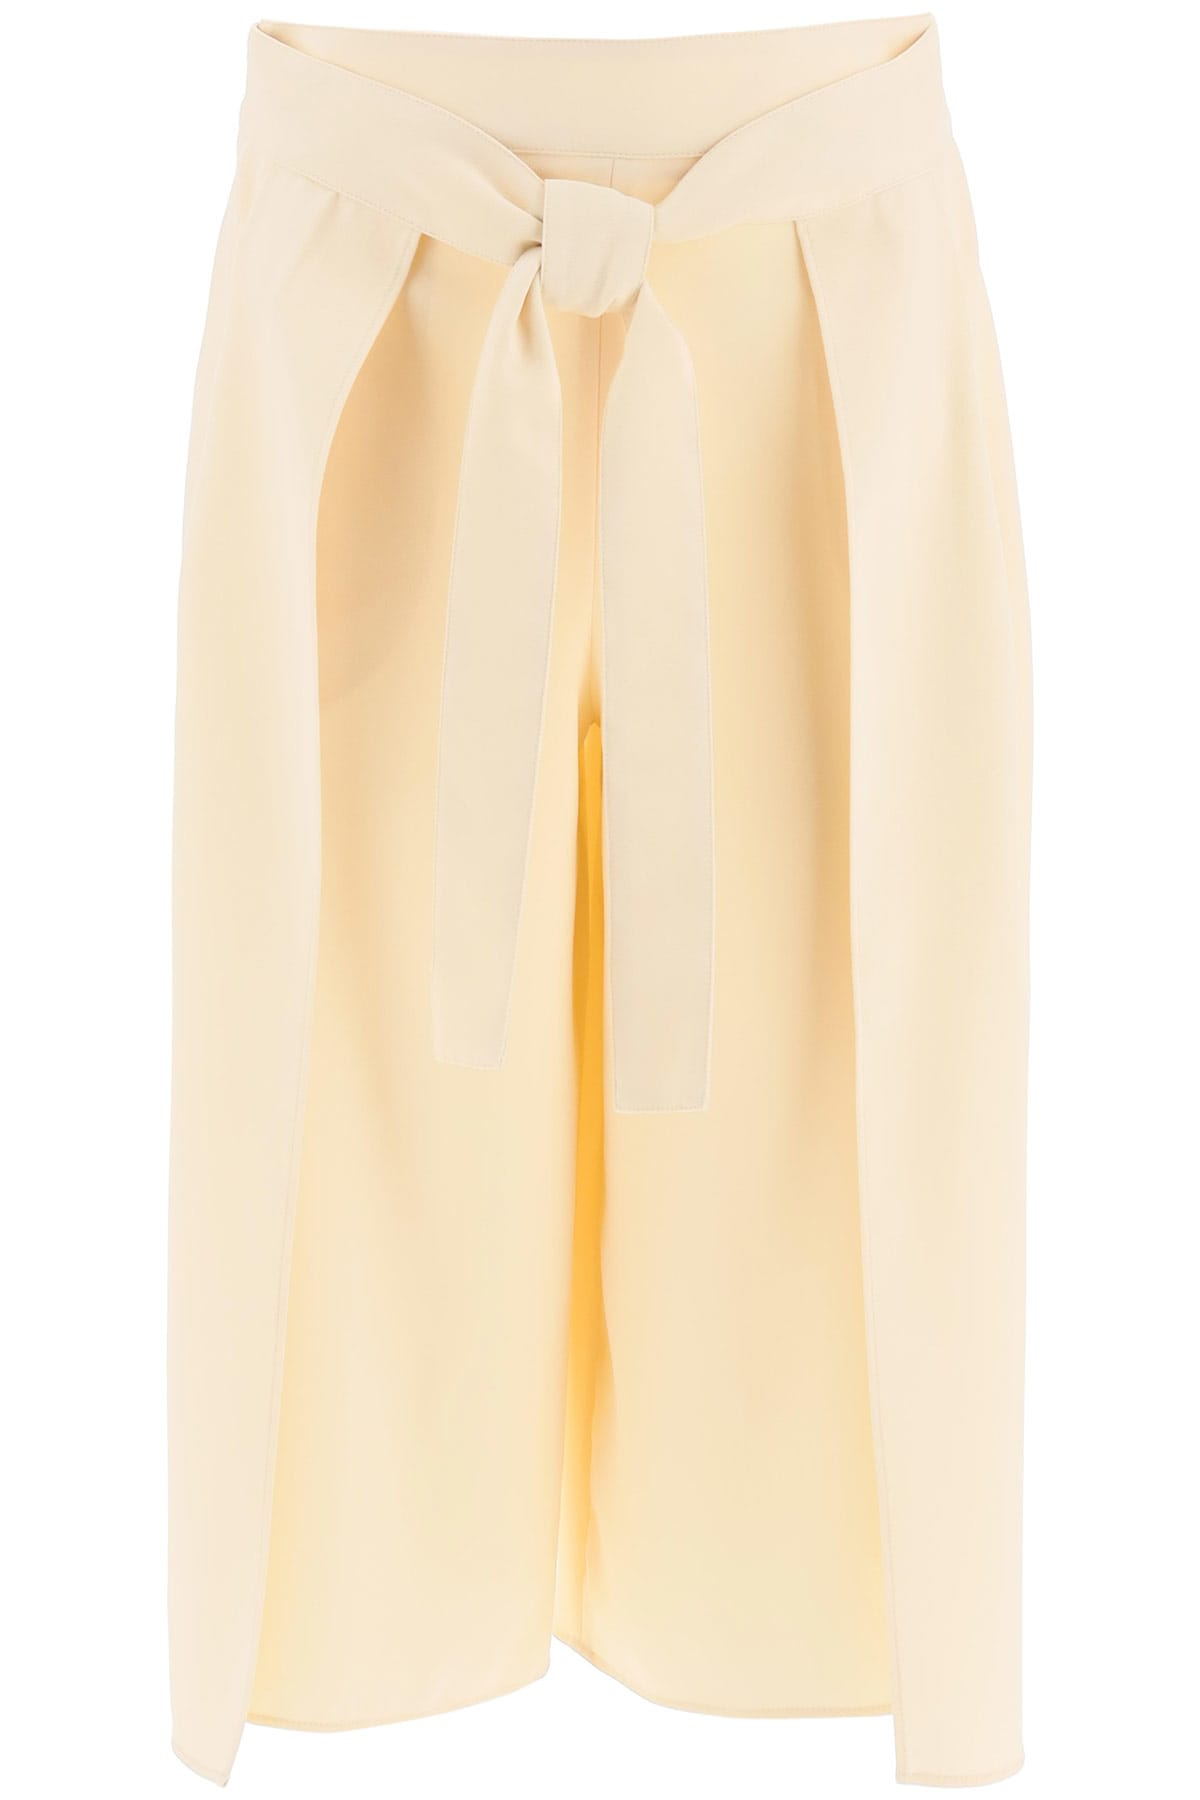 See by Chloé Knotted Culottes